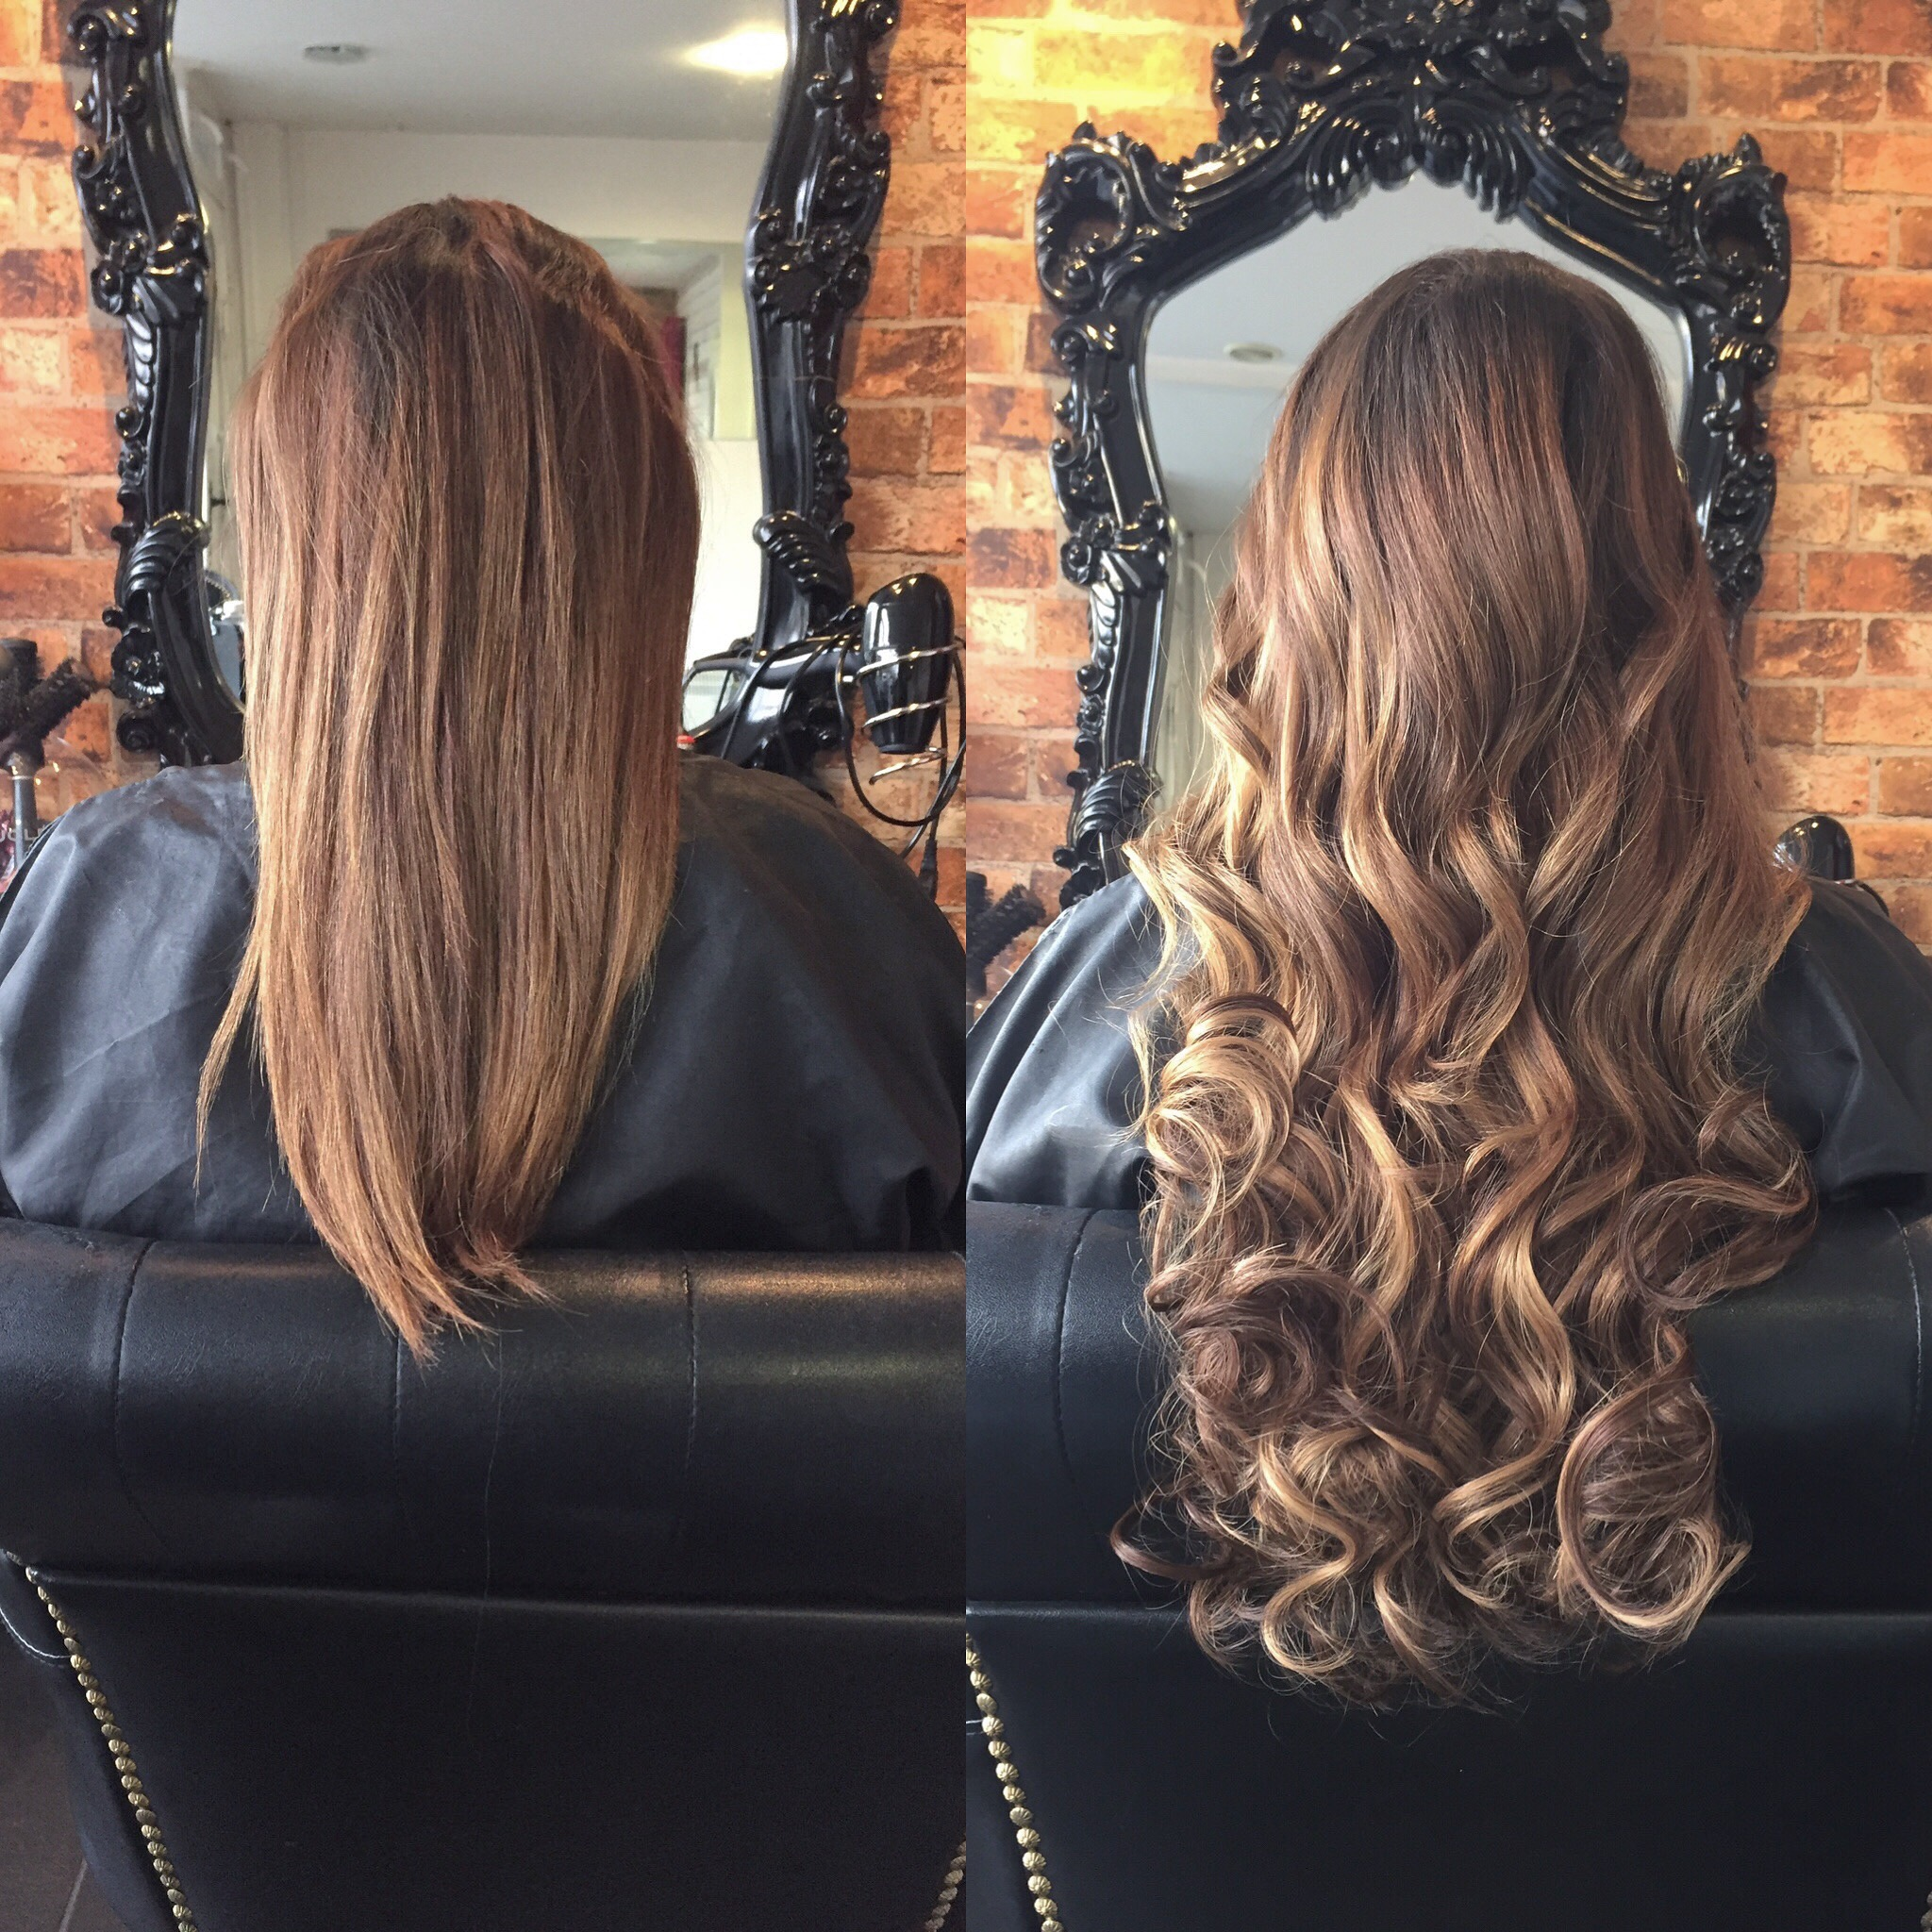 hair extension salon transform short fine hair into long luscious locks with beauty works hair exten